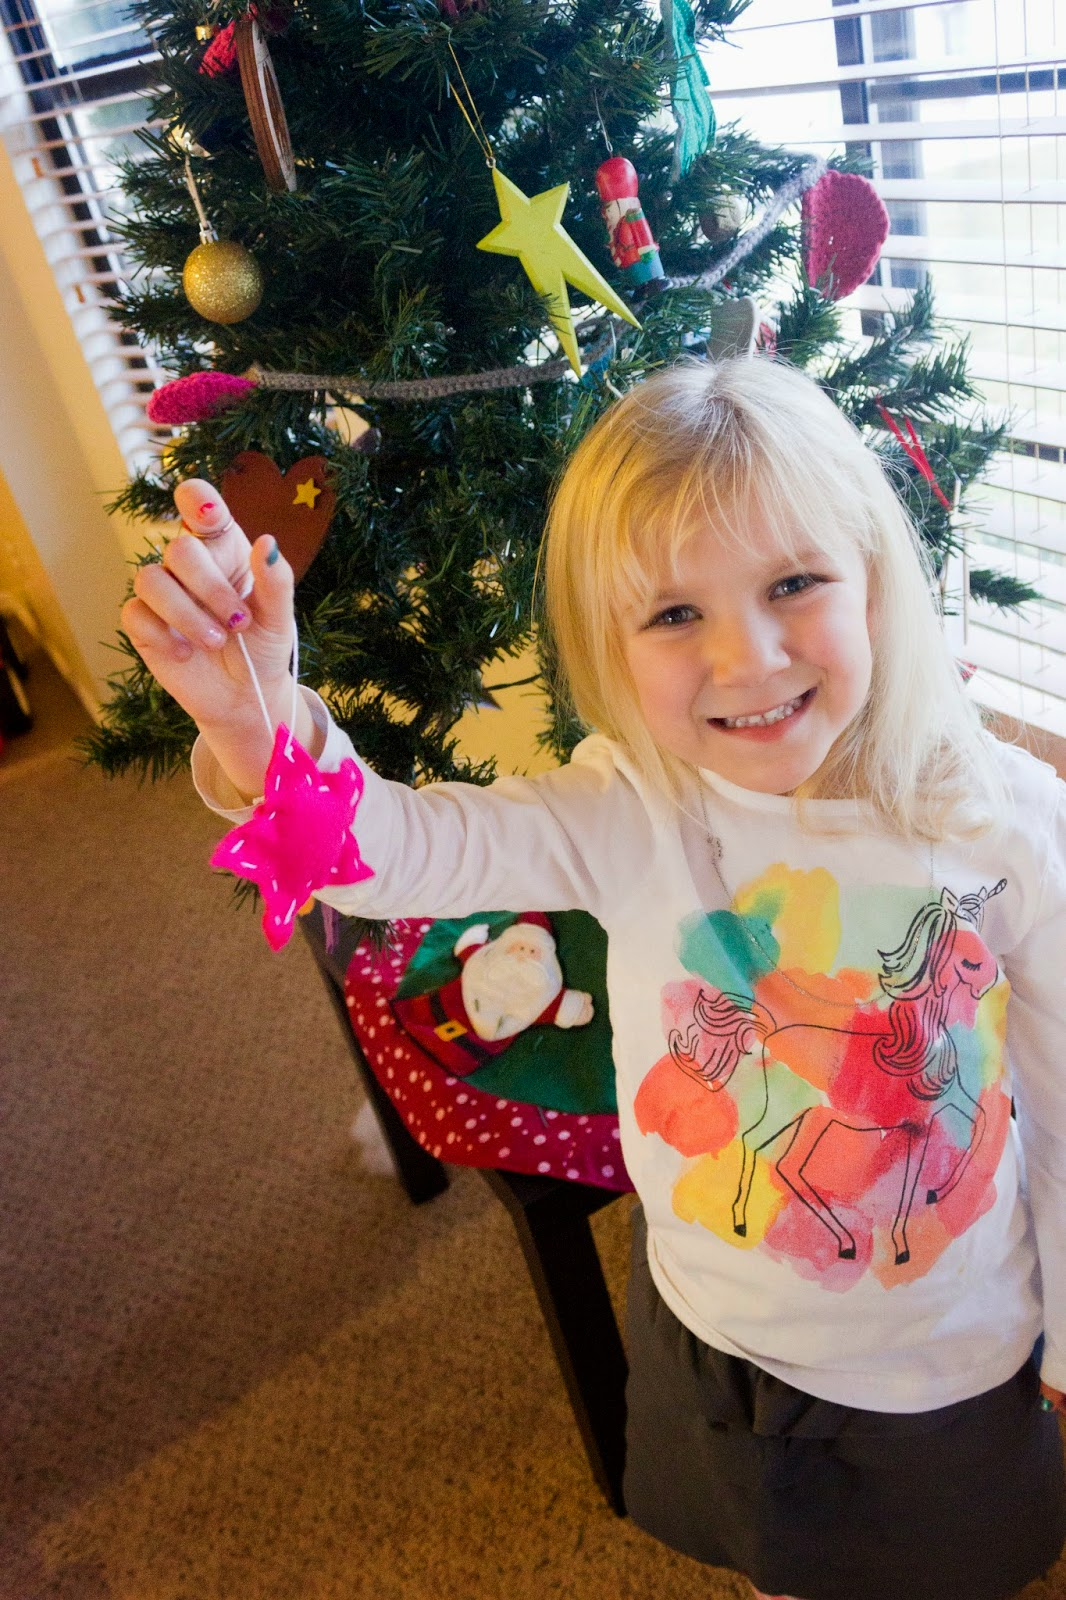 Sew a Felt Star Ornament | hillmade.blogspot.com | a beginning sewing project for any age